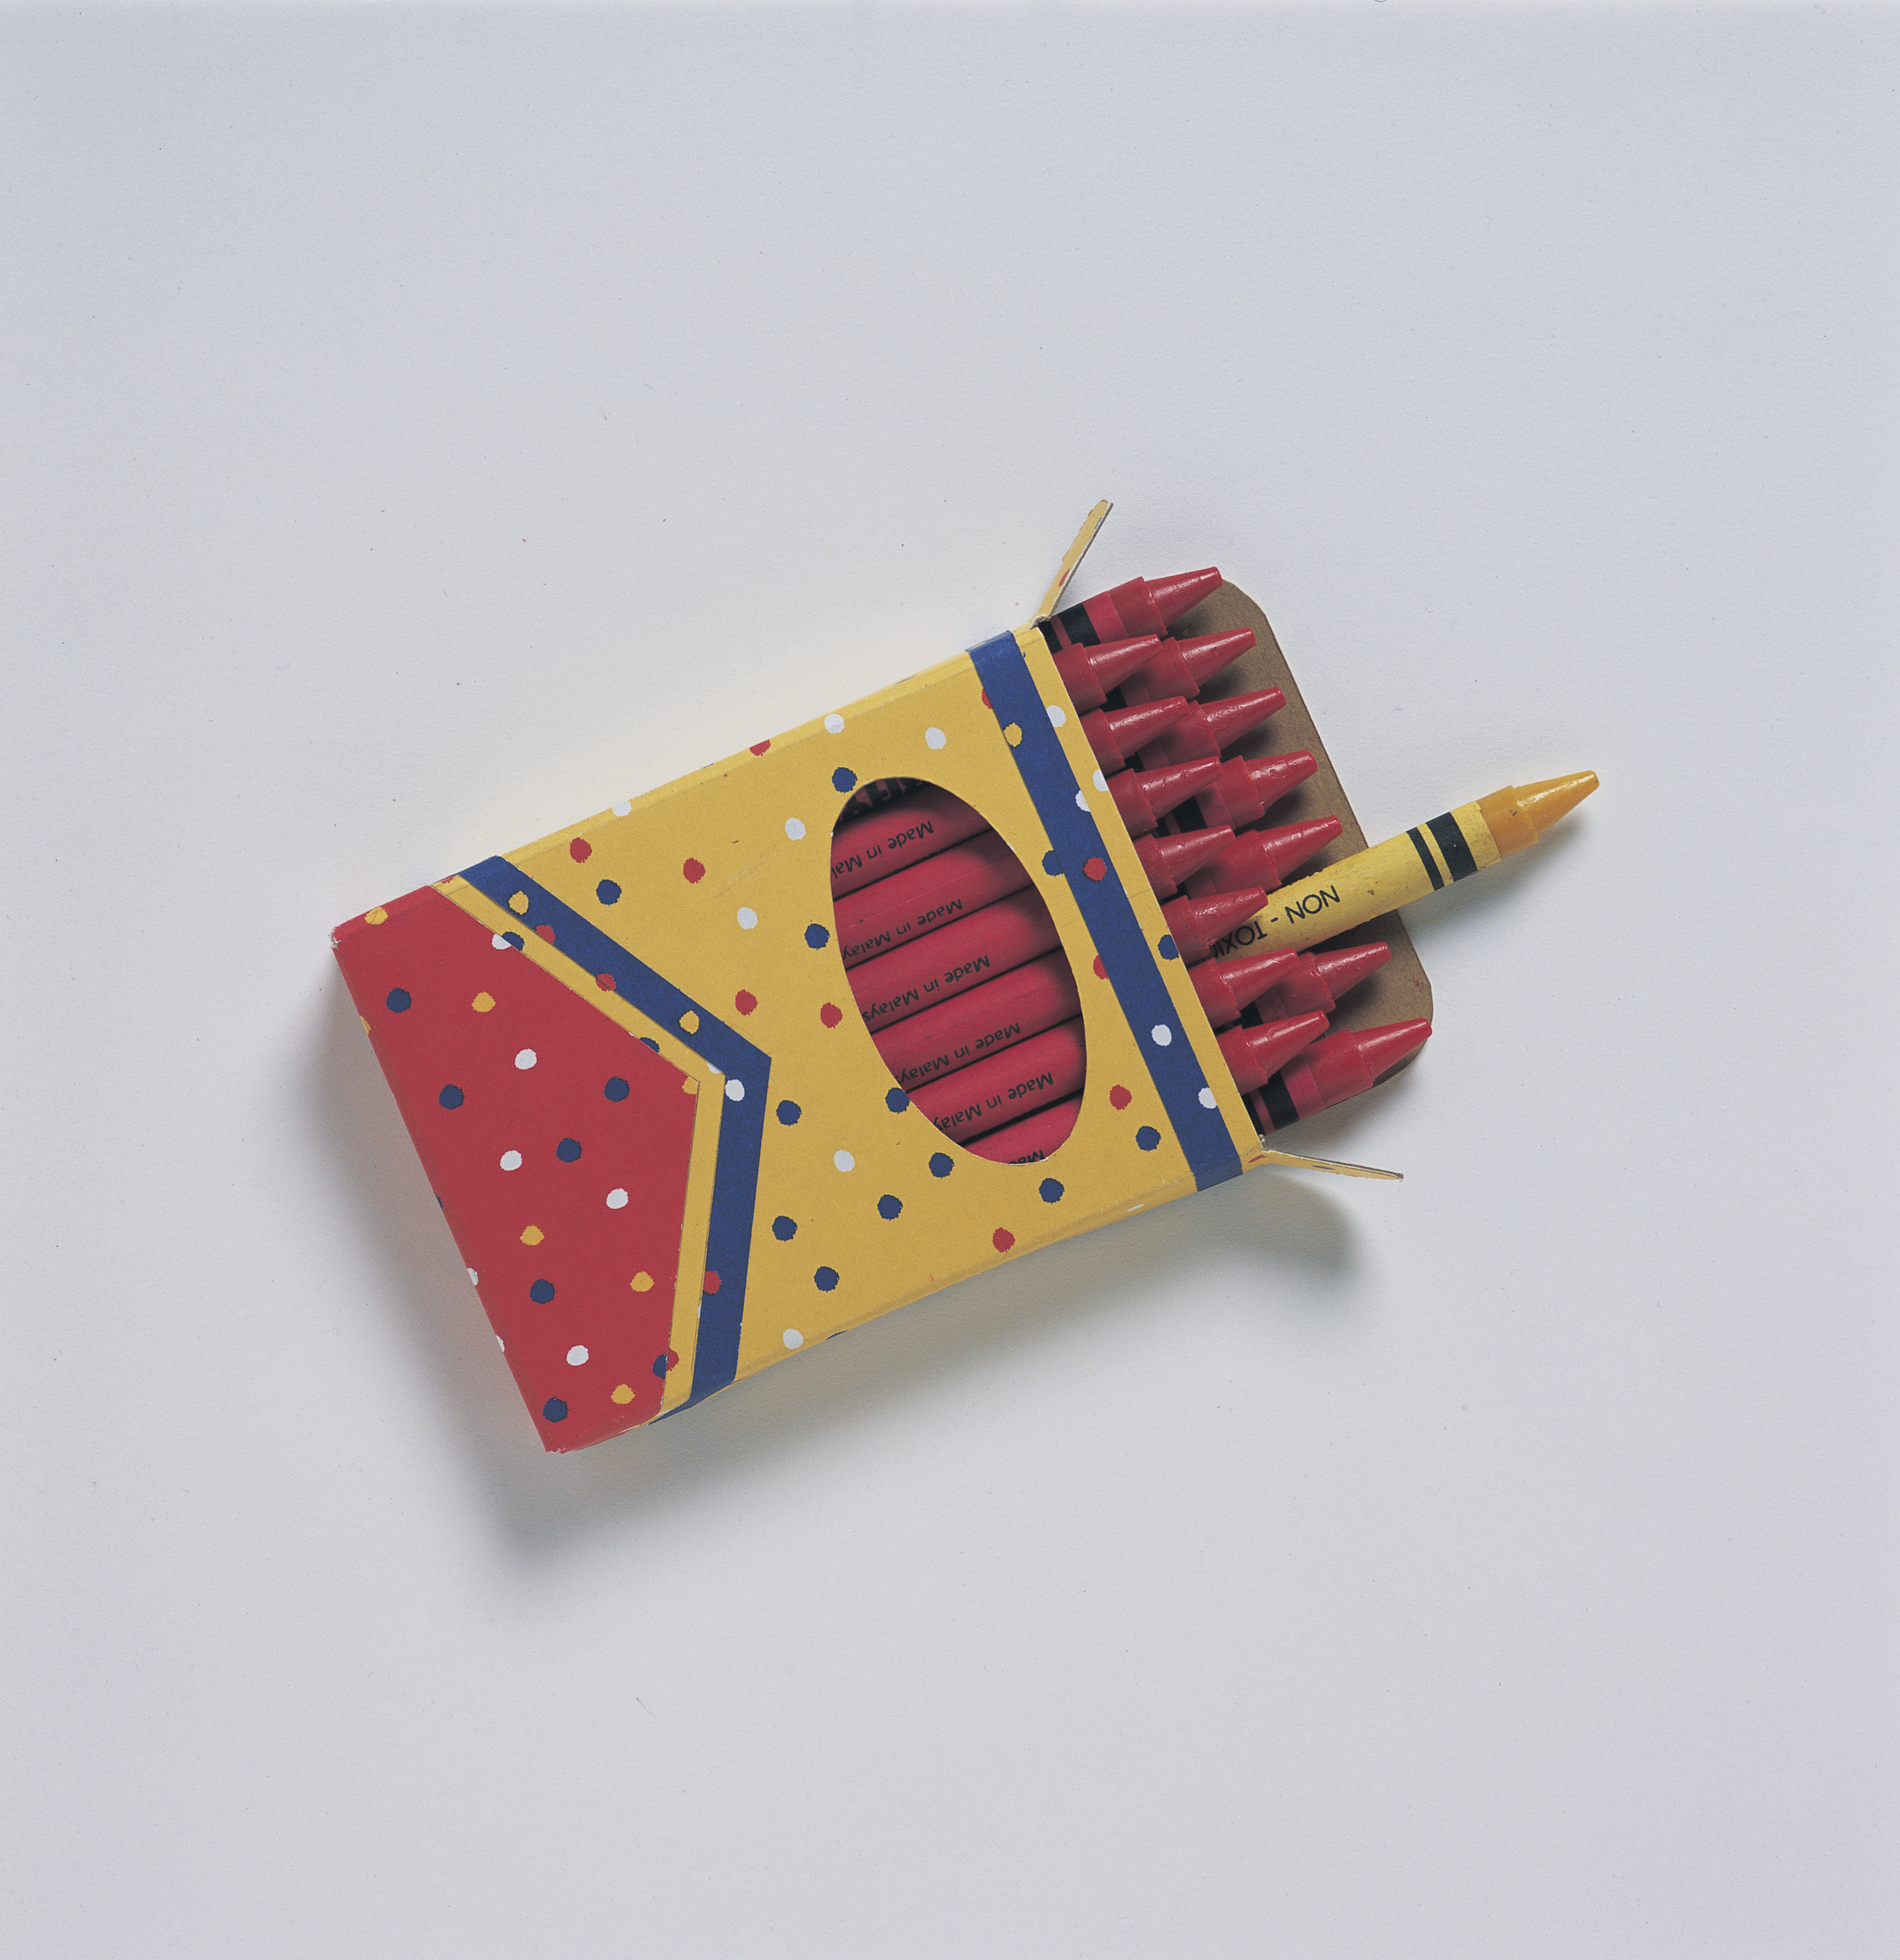 One yellow crayon in a box of red crayons.